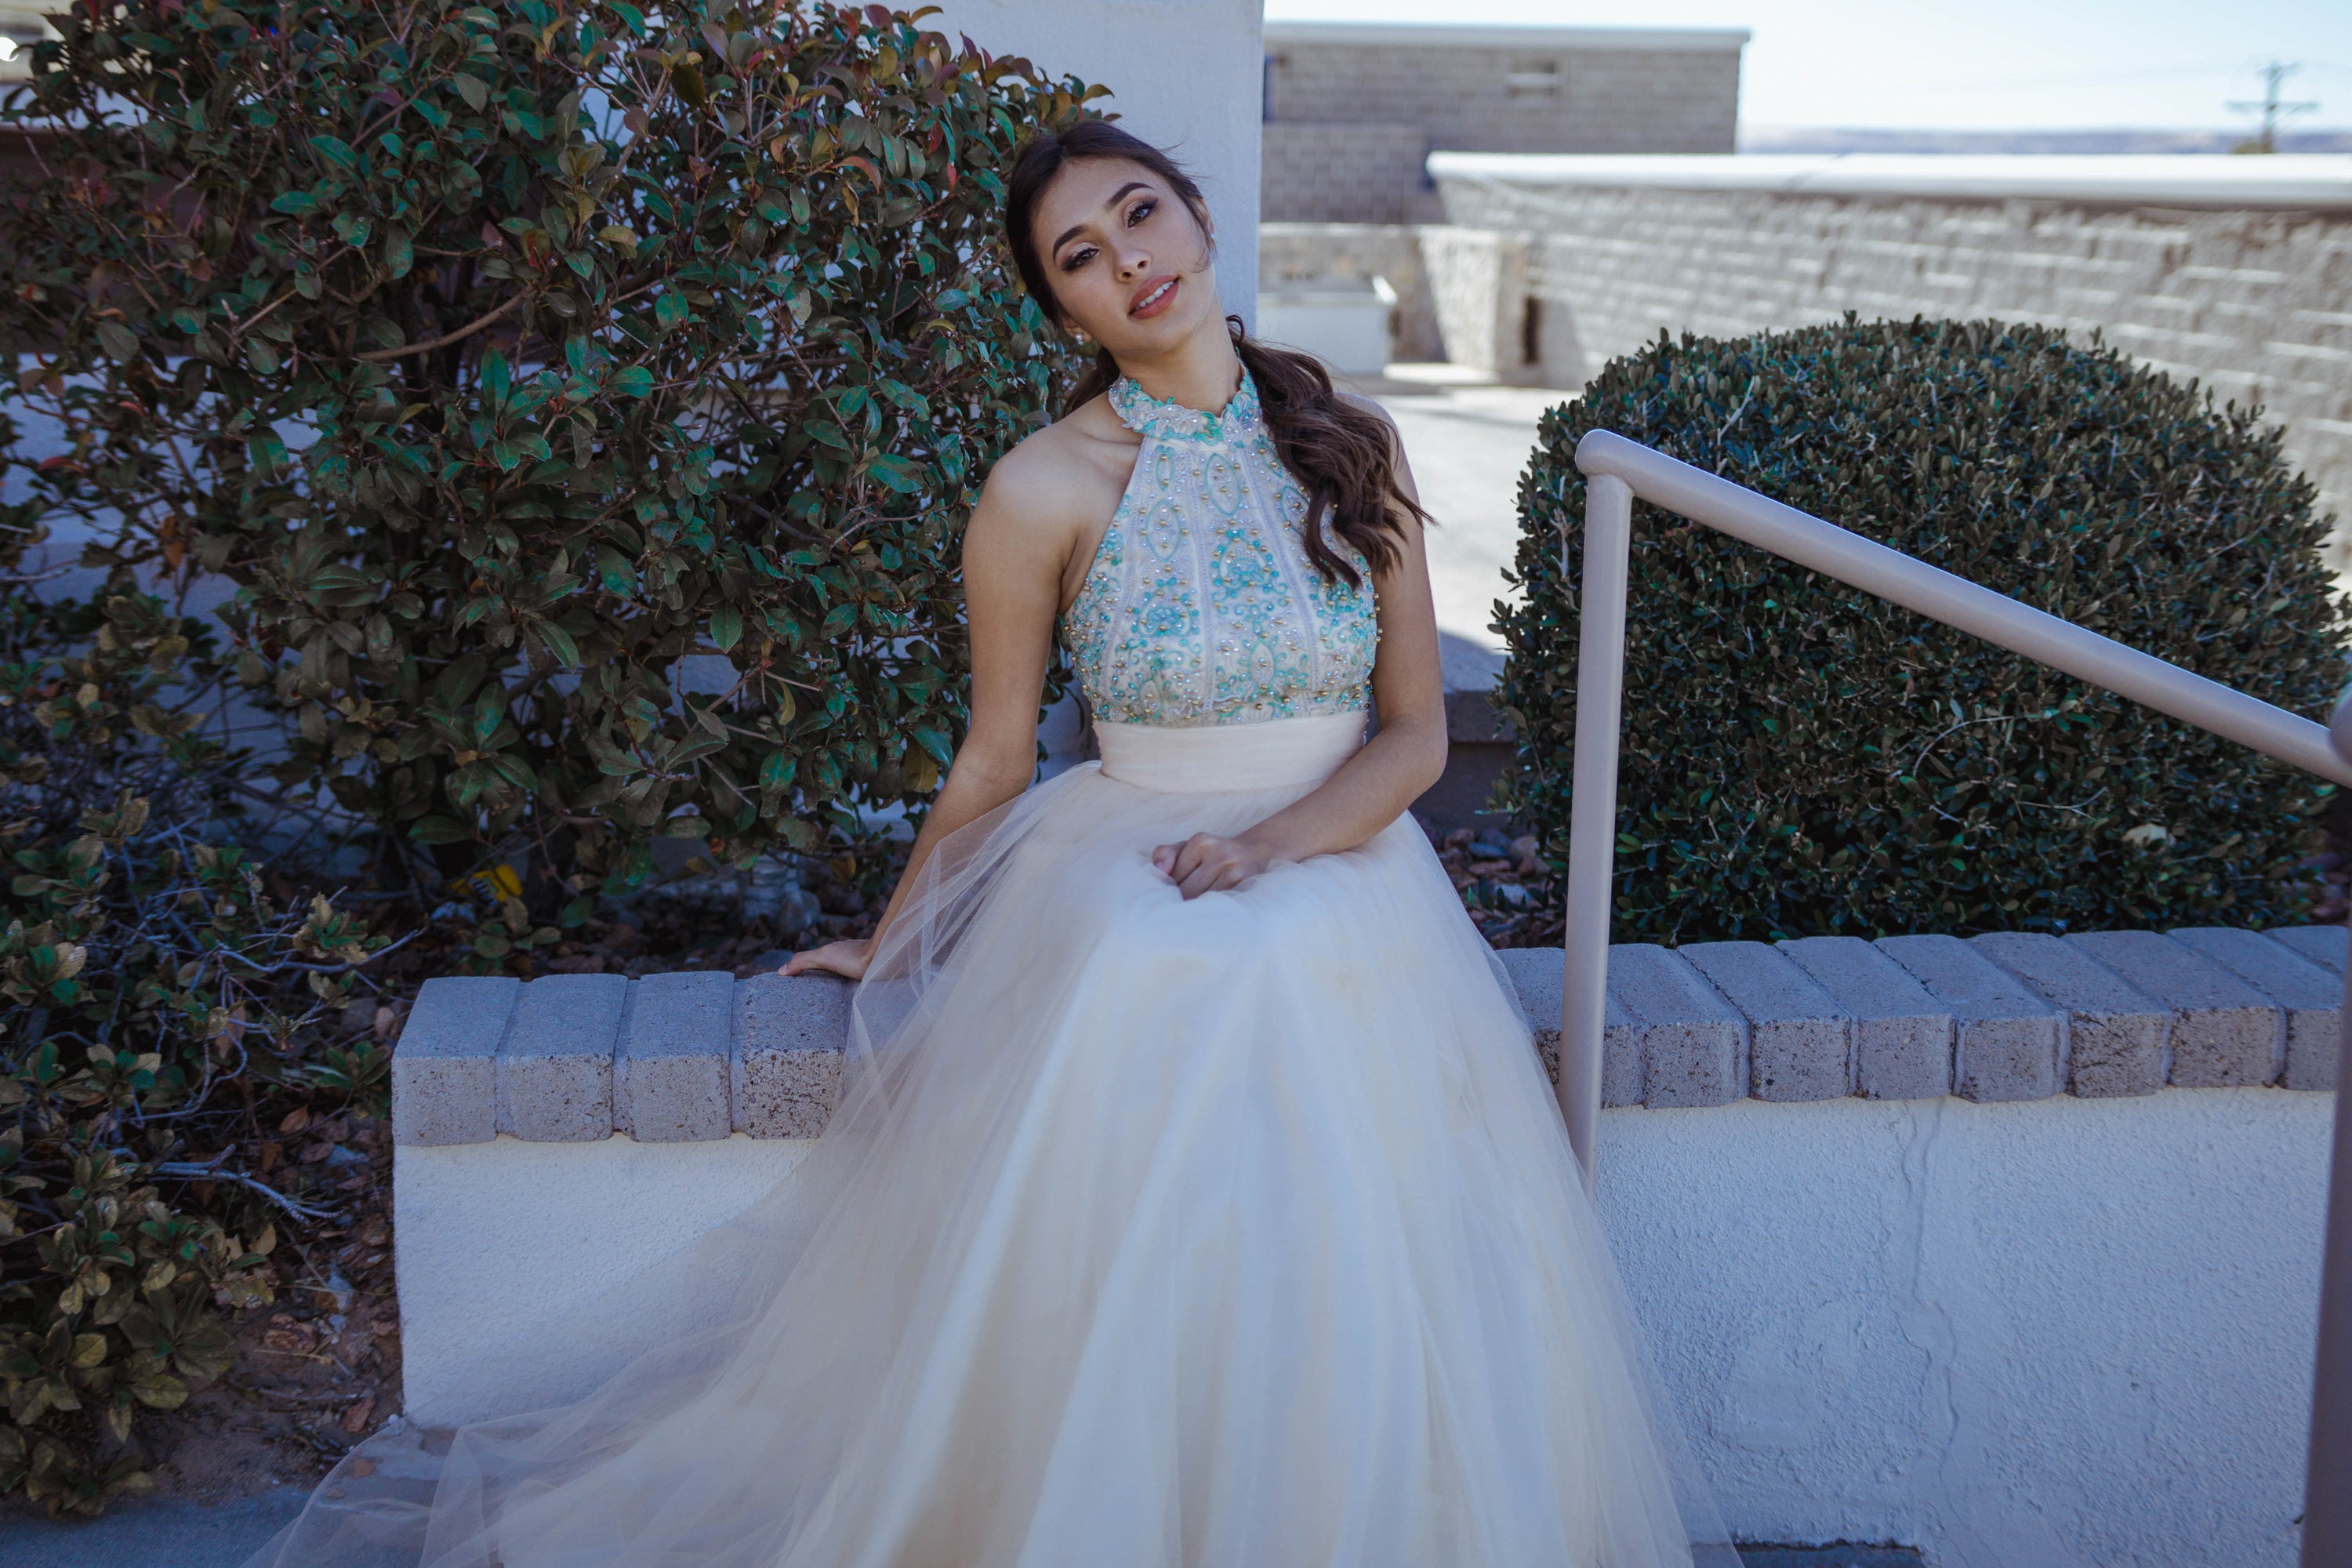 Dress Rental Renta de Vestidos El Paso Tx